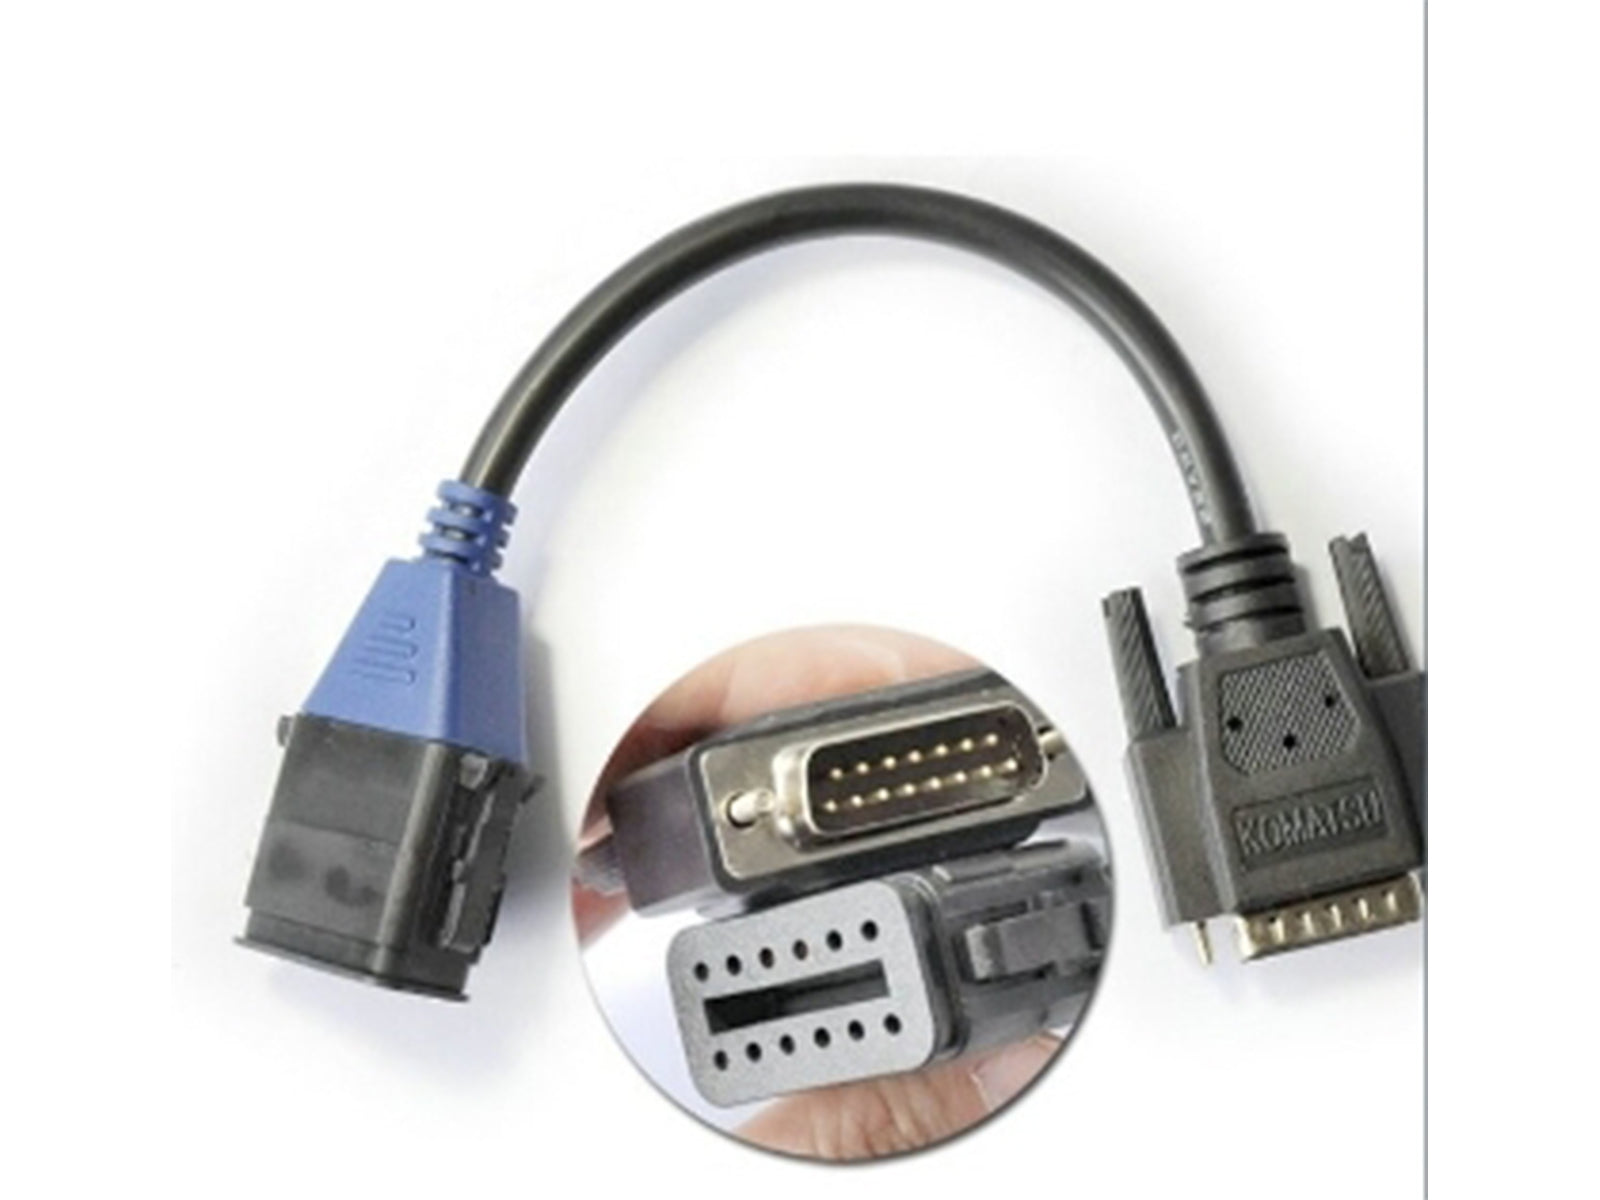 Diesel Laptops Komatsu Cable for USB Link